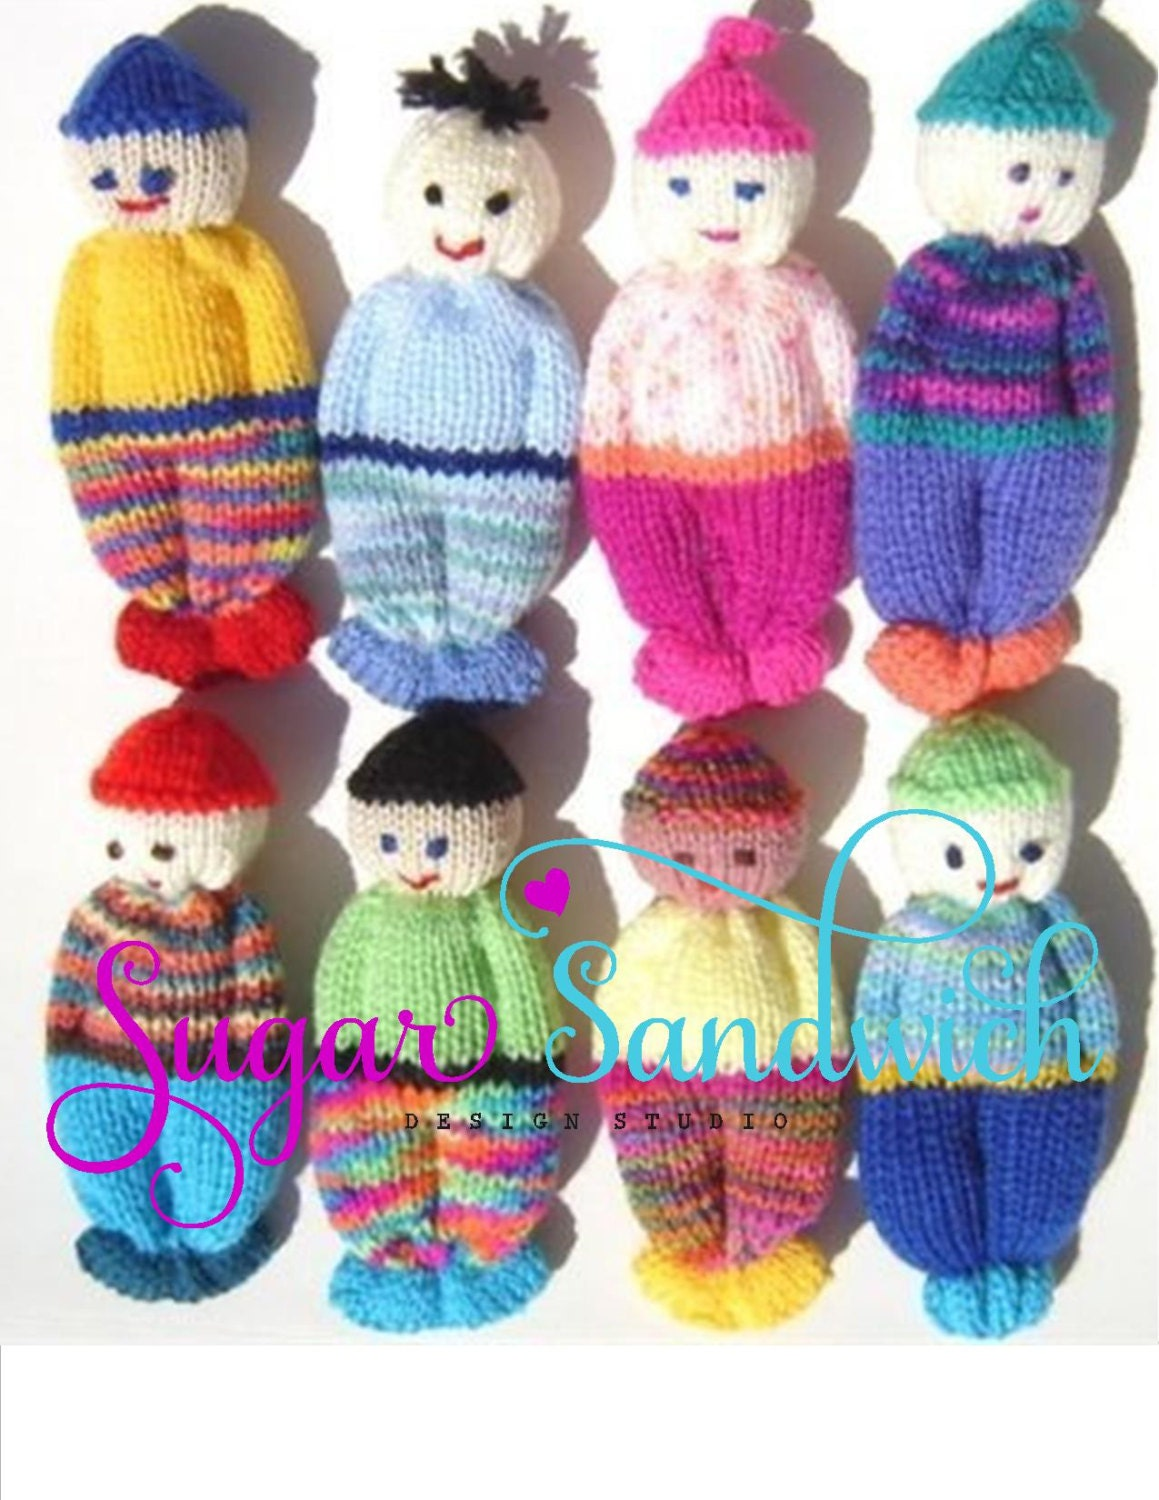 Comfort doll knitting pattern easy to make 5 inch knitted zoom bankloansurffo Choice Image